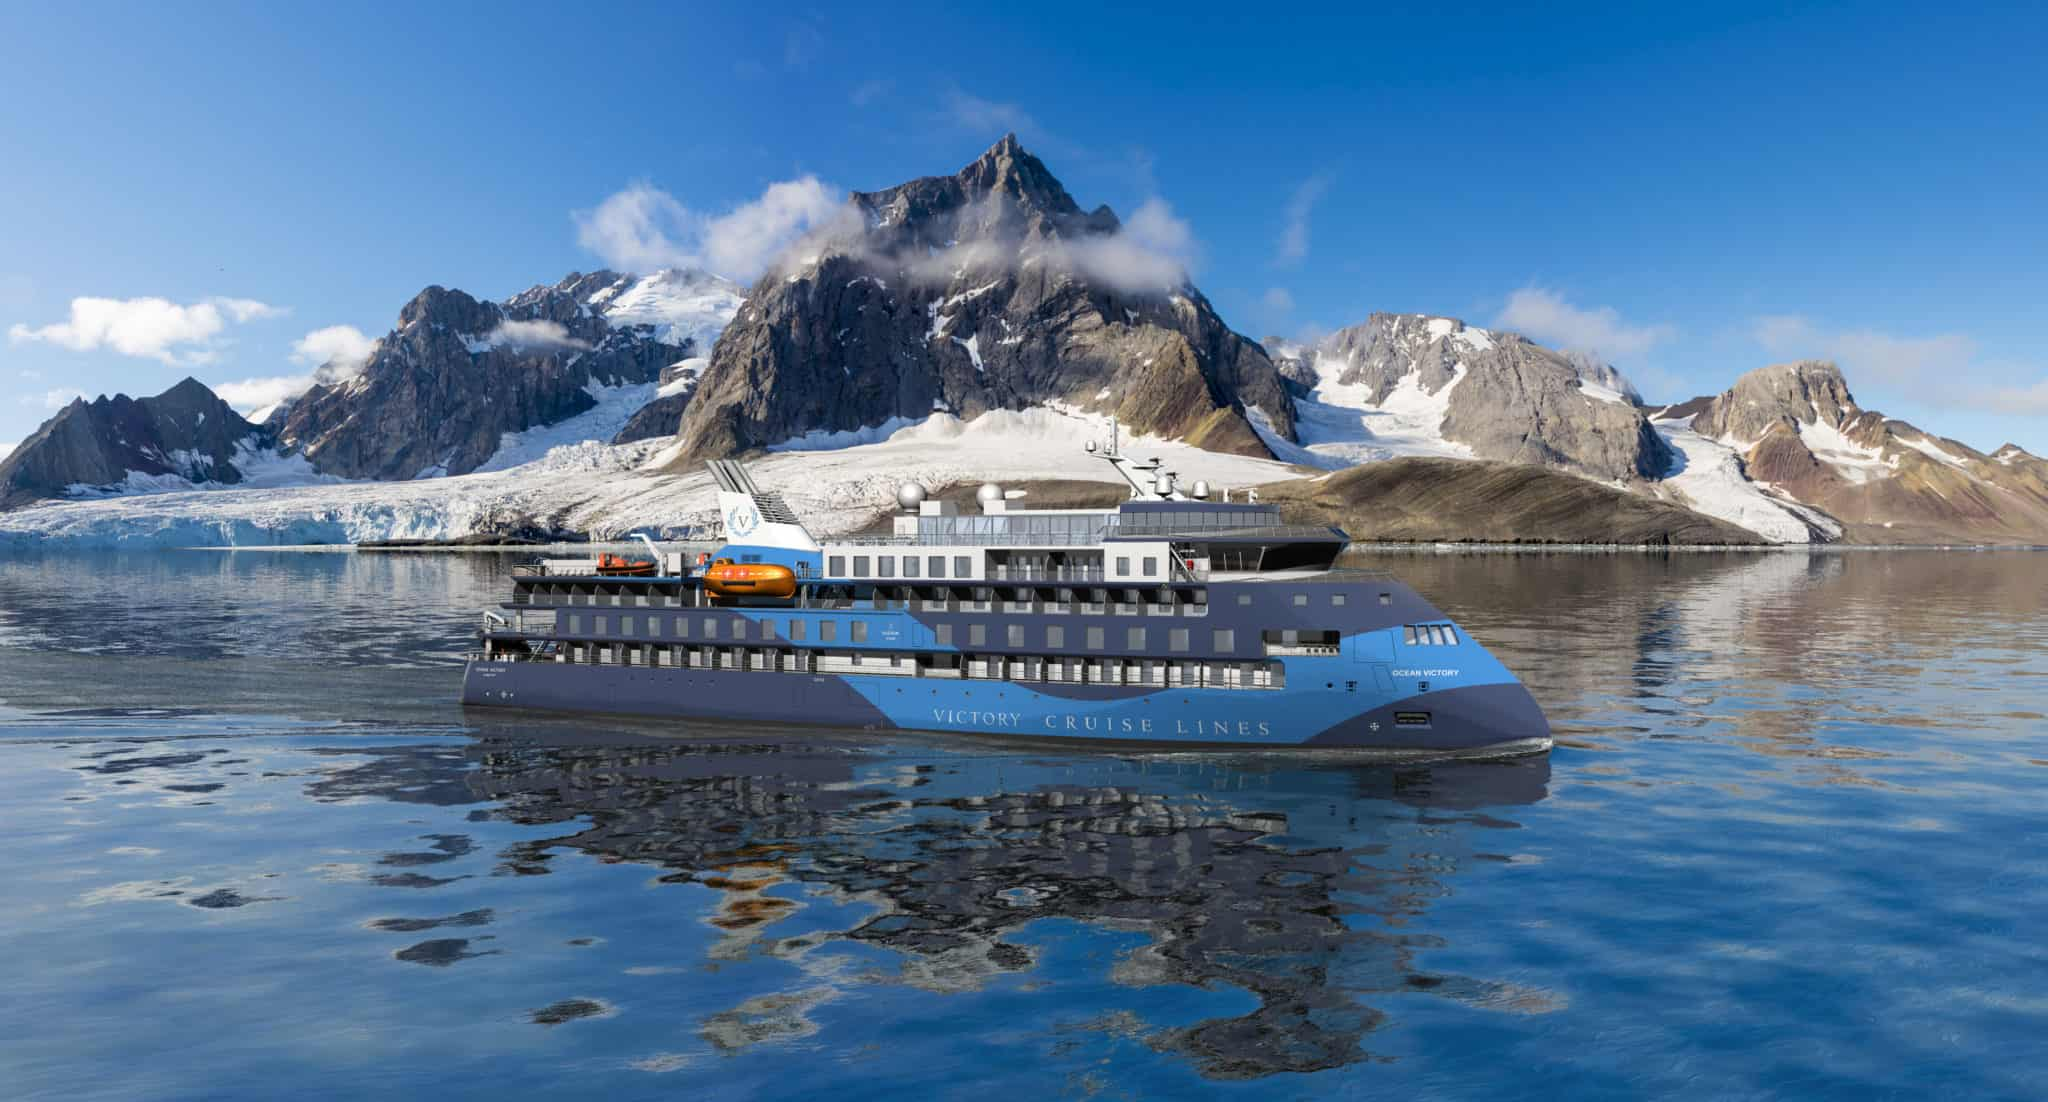 ocean victory exterior expedition